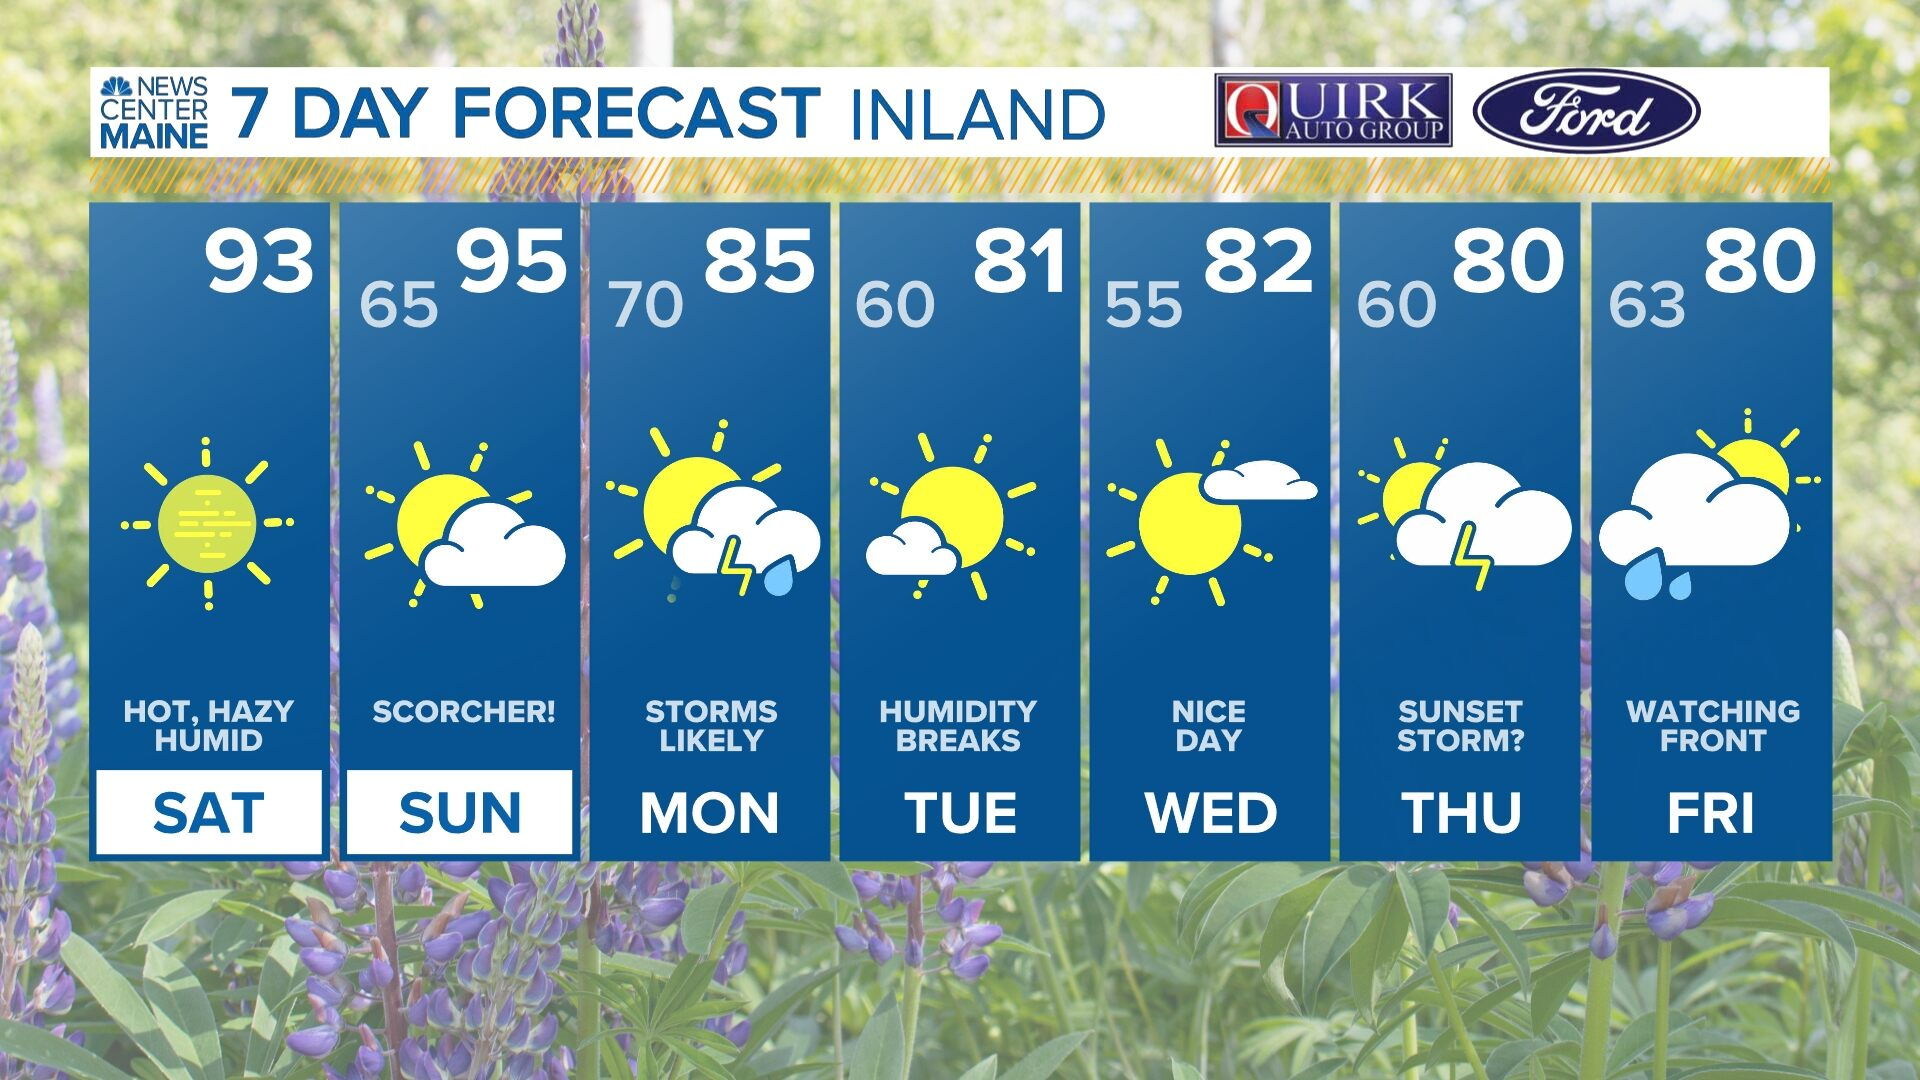 10 Day Forecast on WCSH in Maine